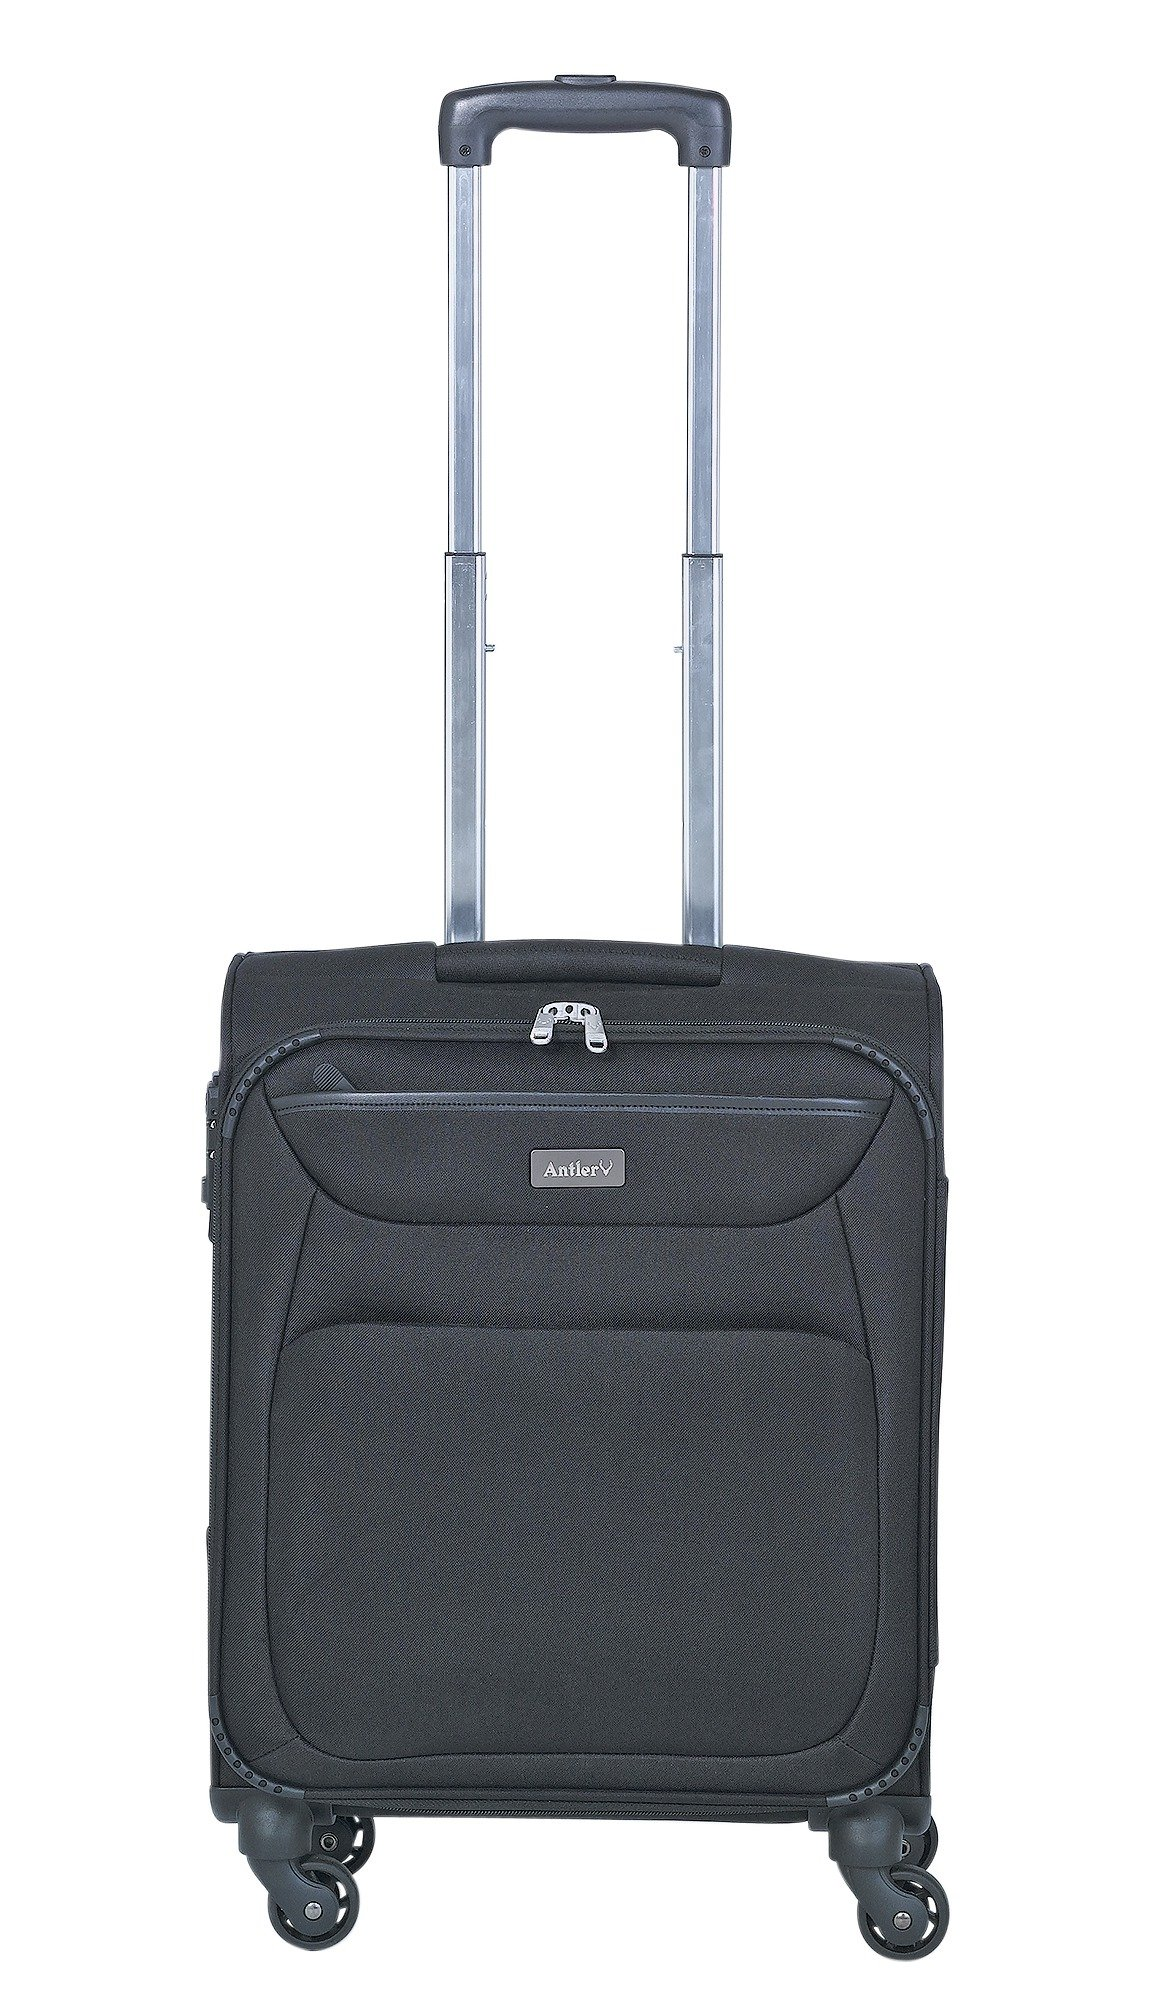 Image of Antler Savanna 4 Wheel Suitcase Black Small